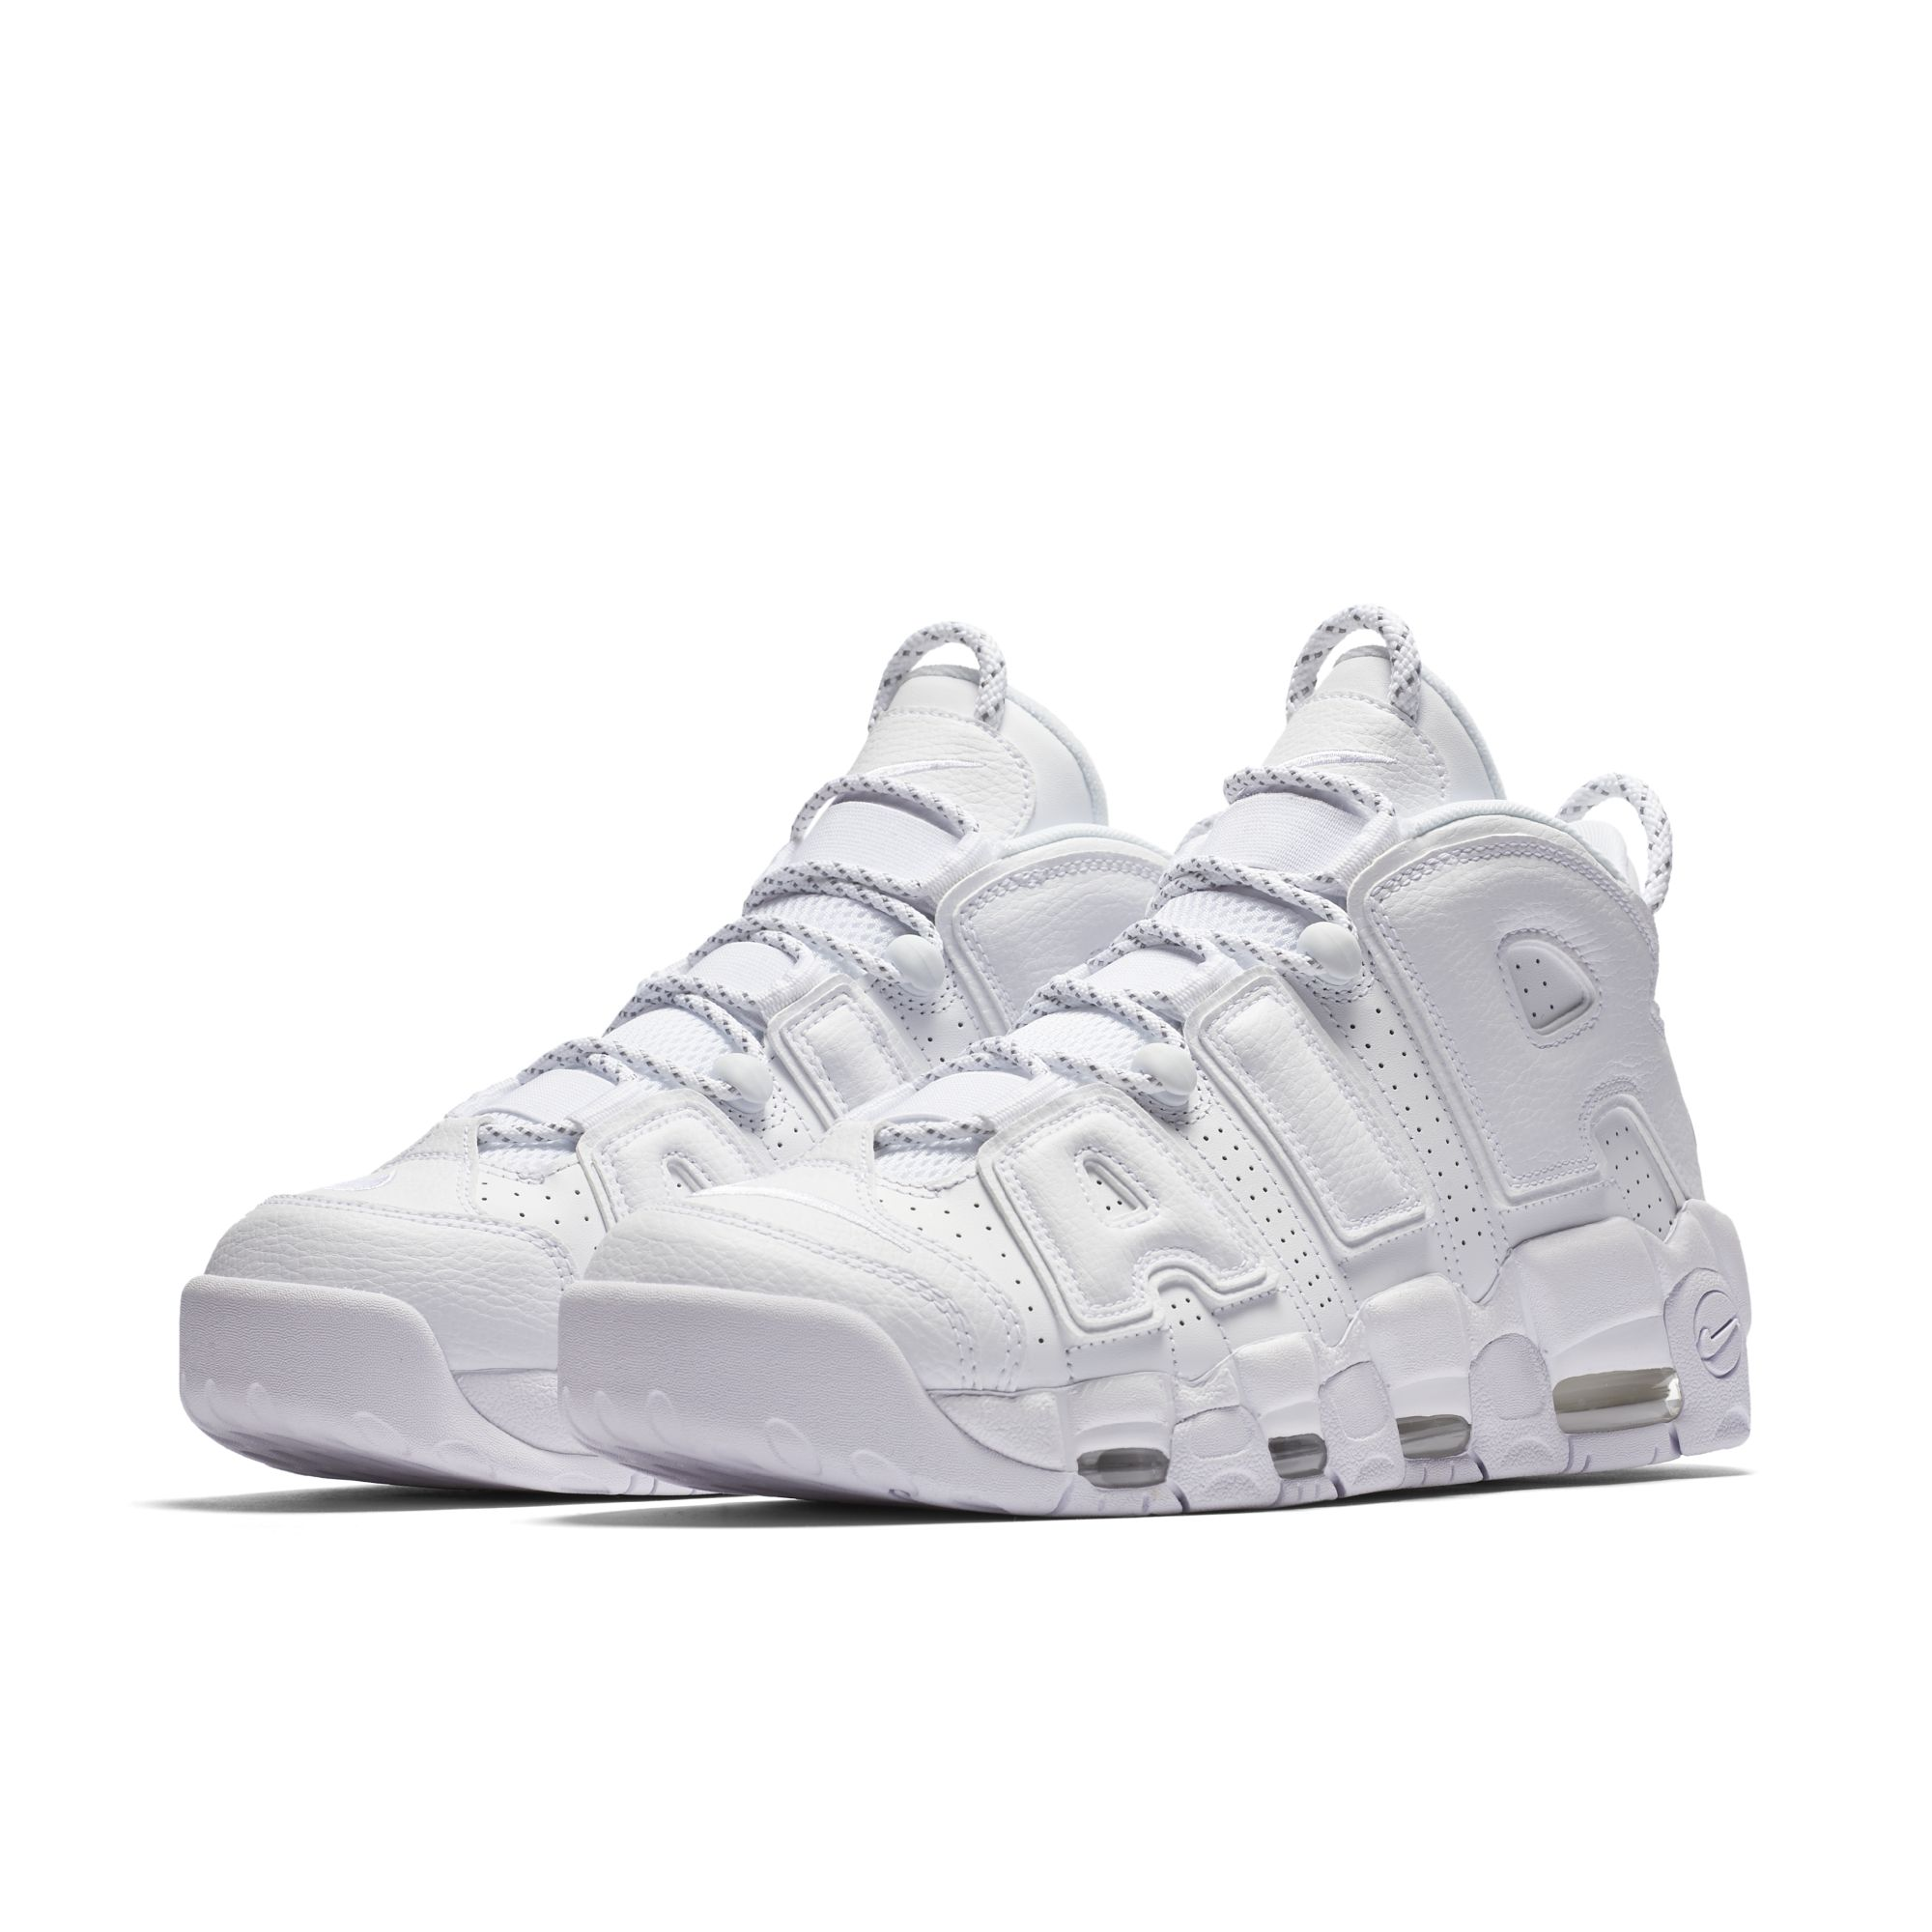 Nike-Air-More-Uptempo-Triple-White-5